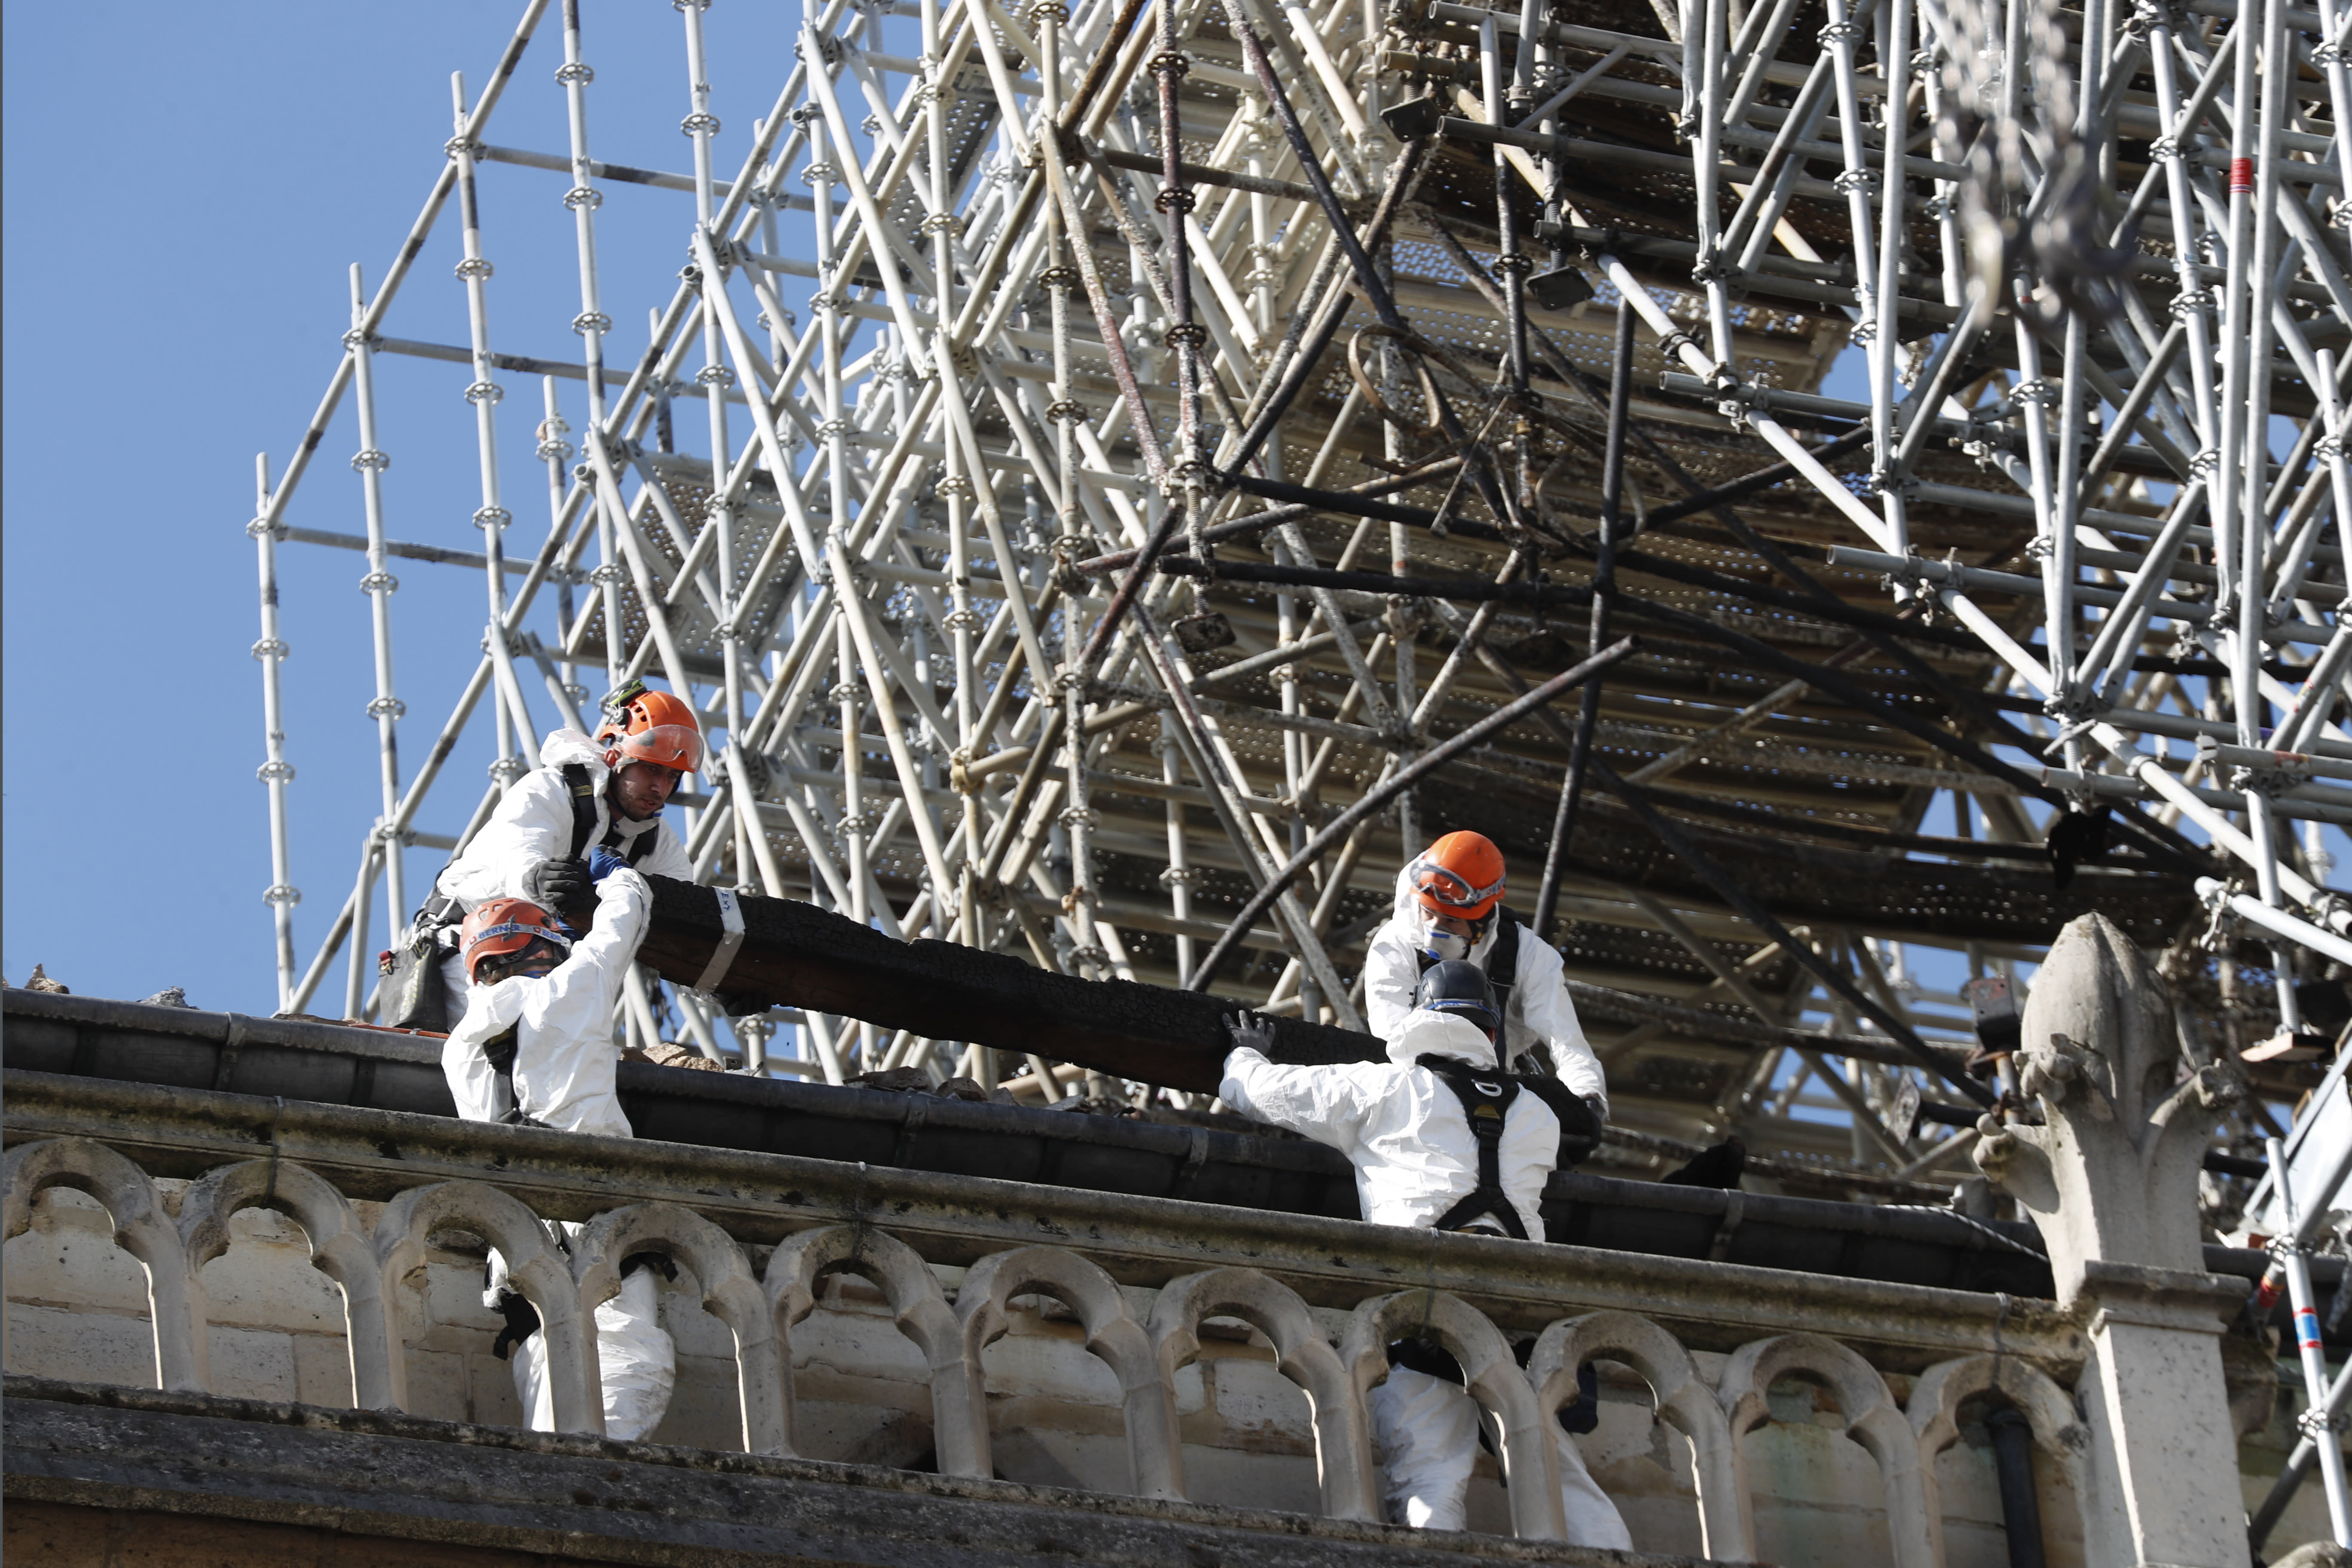 Workers install protections on Notre Dame cathedral Wednesday, April 24, 2019 in Paris. Professional mountain climbers were hired to install synthetic, waterproof tarps over the gutted, exposed exterior of Notre Dame Cathedral, as authorities raced to prevent further damage ahead of storms that are rolling in toward Paris. (AP Photo/Thibault Camus)